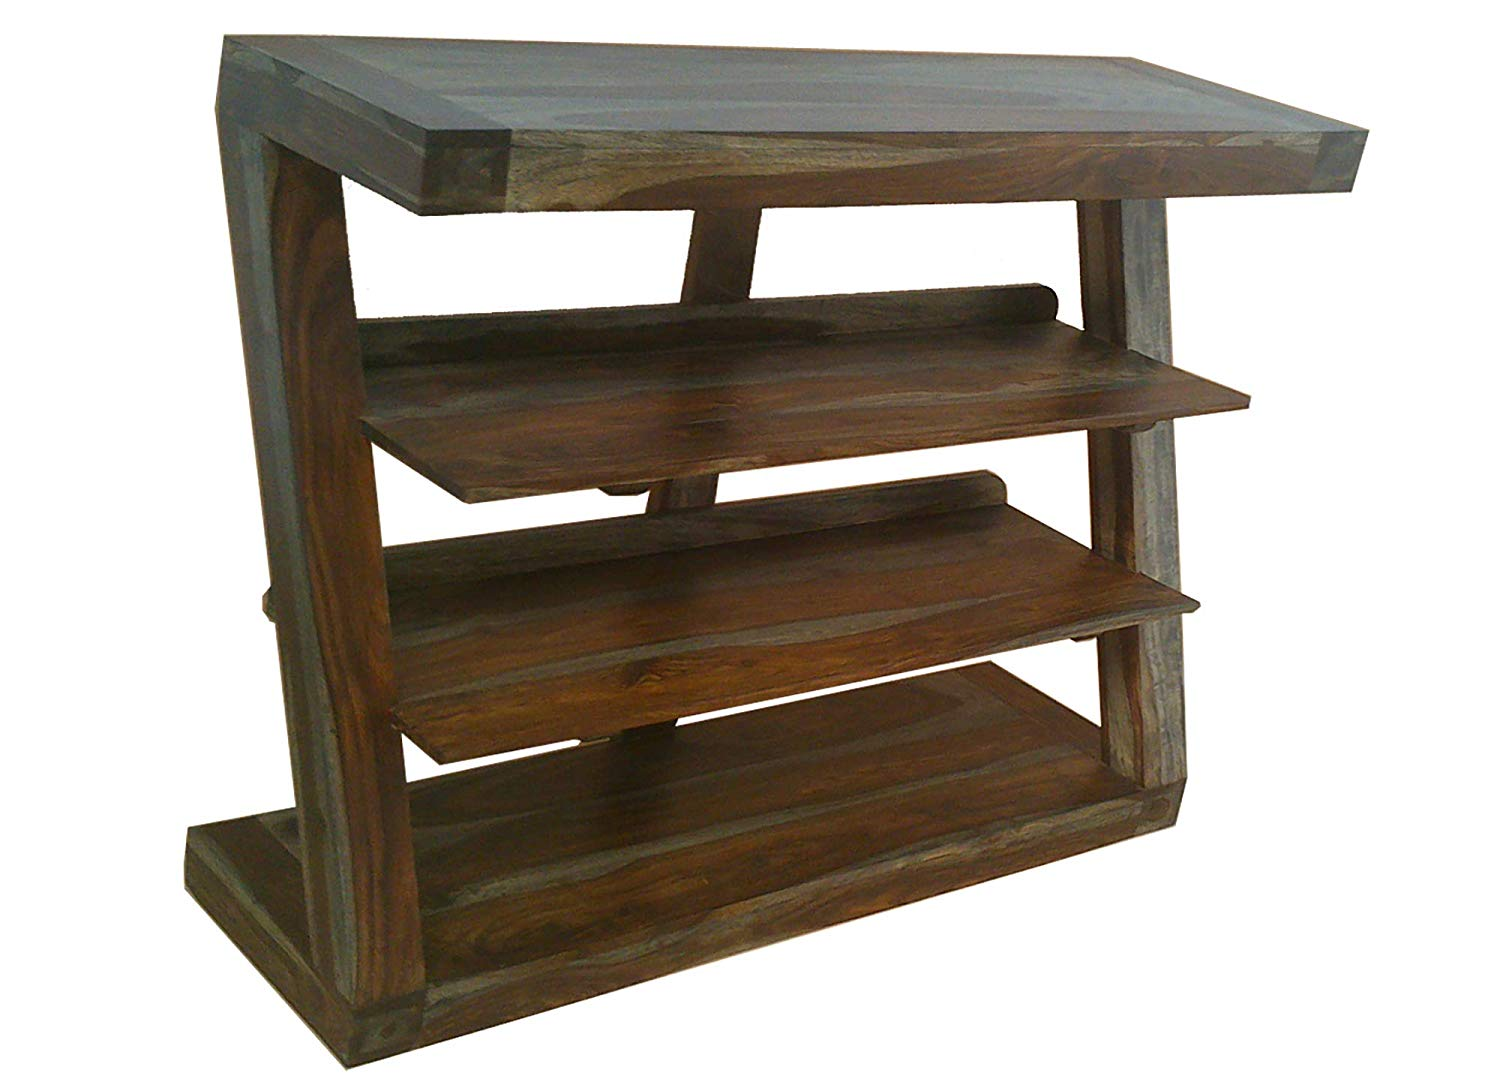 Nikunj Solid Wood Z Shape Book Shelf For Home Sheesham Wood Brown Finish Specially Designed Quality Certified Furniture For Home Living Room